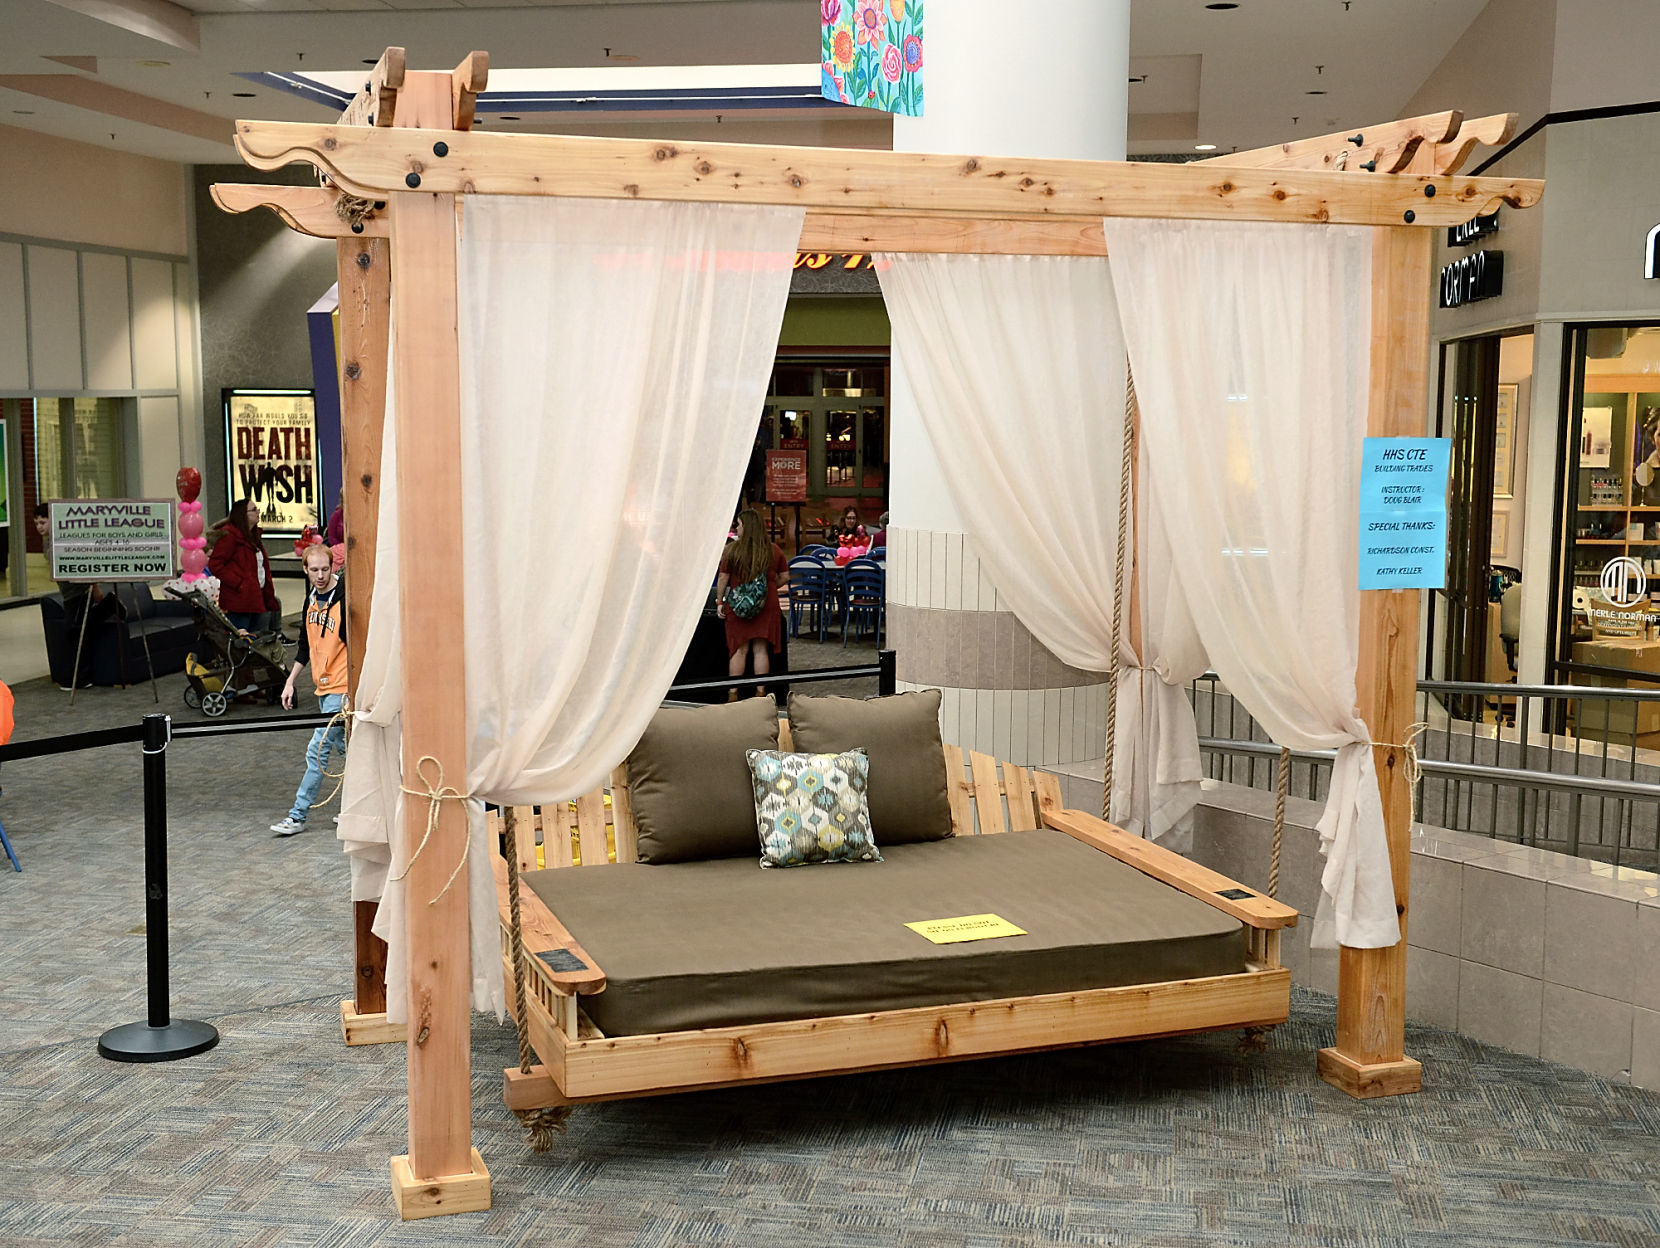 Heritage High Schoolu0027s bed swing for the